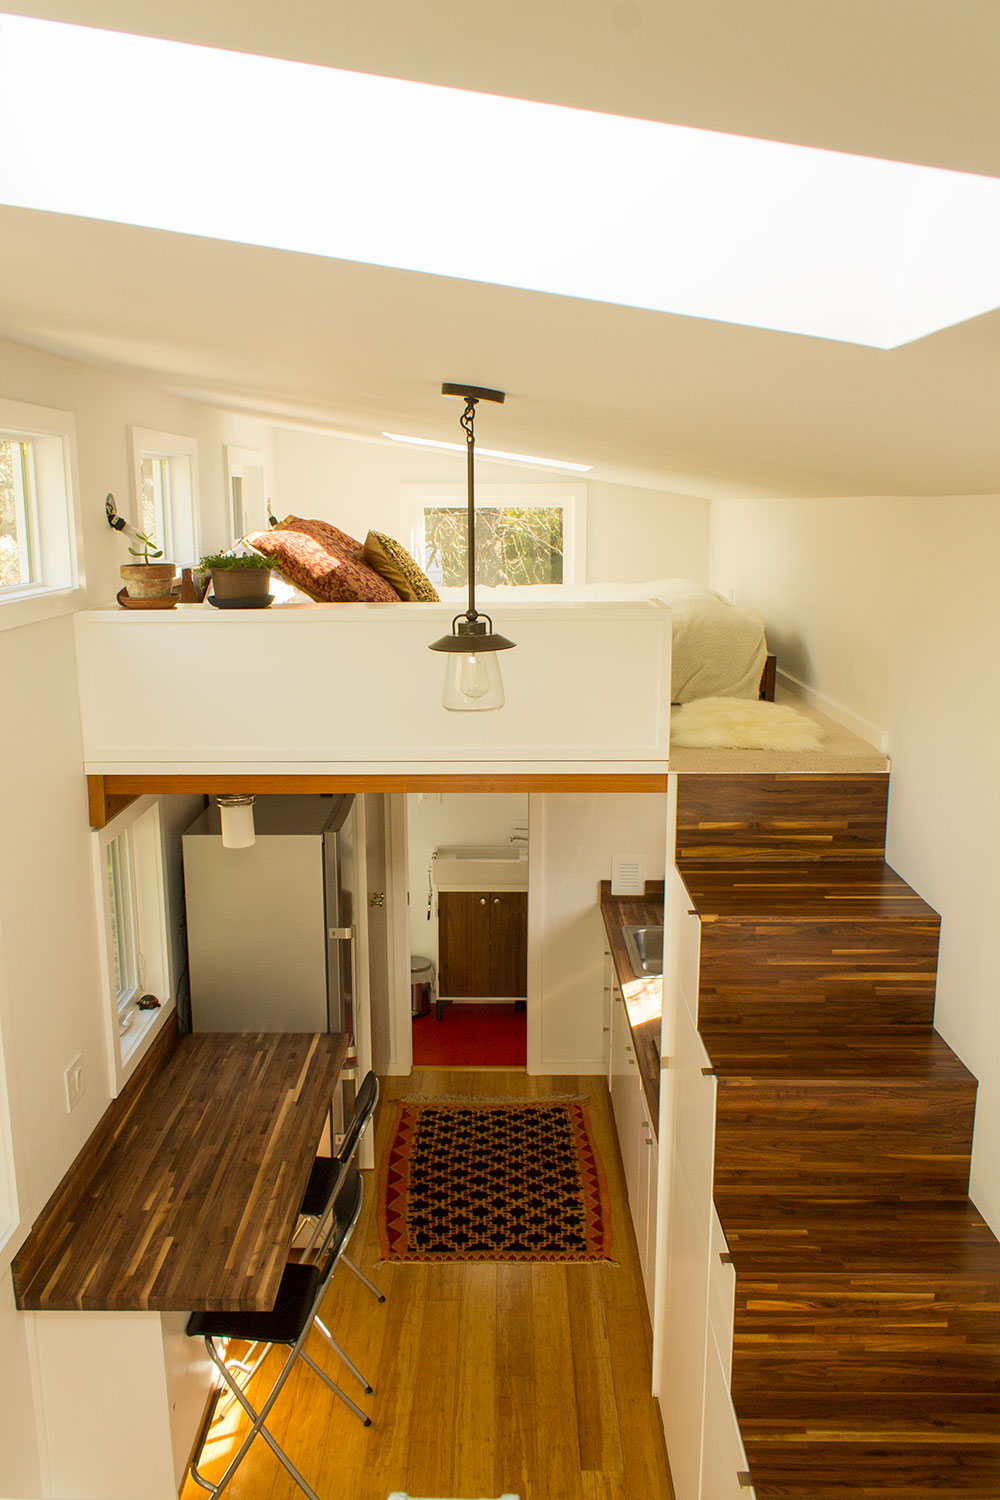 Incroyable Tiny Home Traits: 5 Features Every Small Space Needs